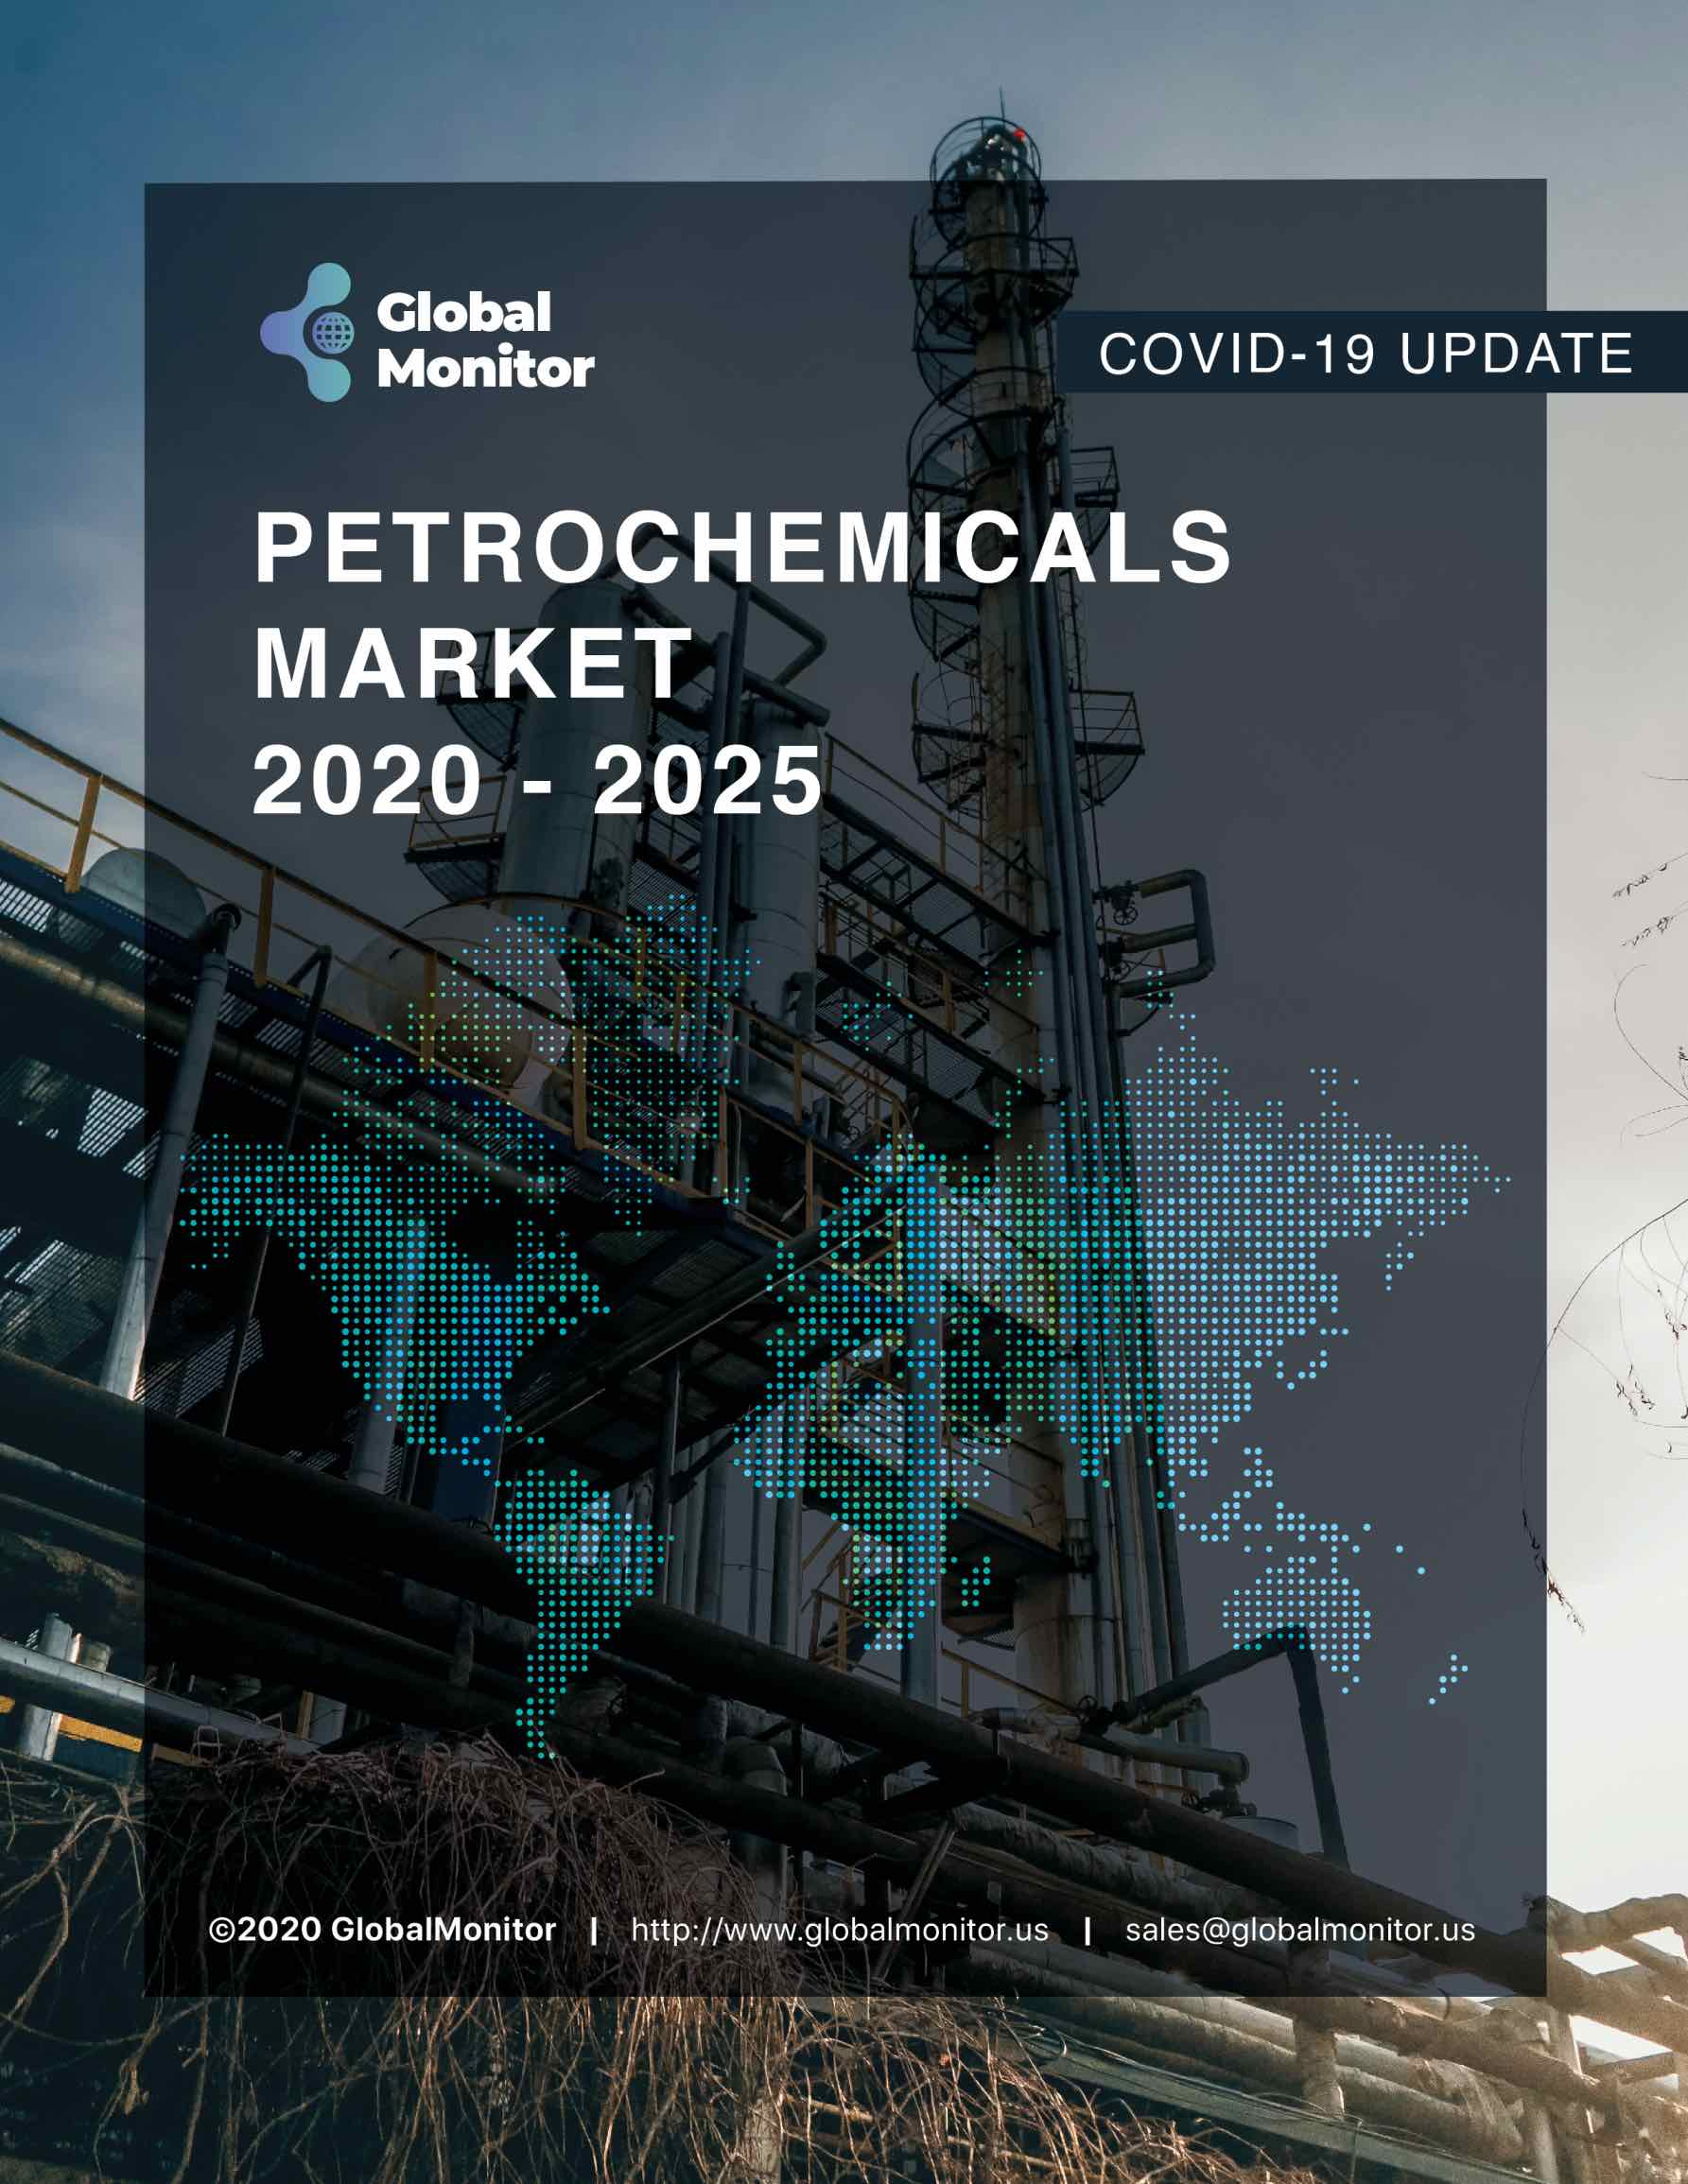 United Kingdom Petrochemicals Market Report With COVID-19 Analysis (2020-2025)